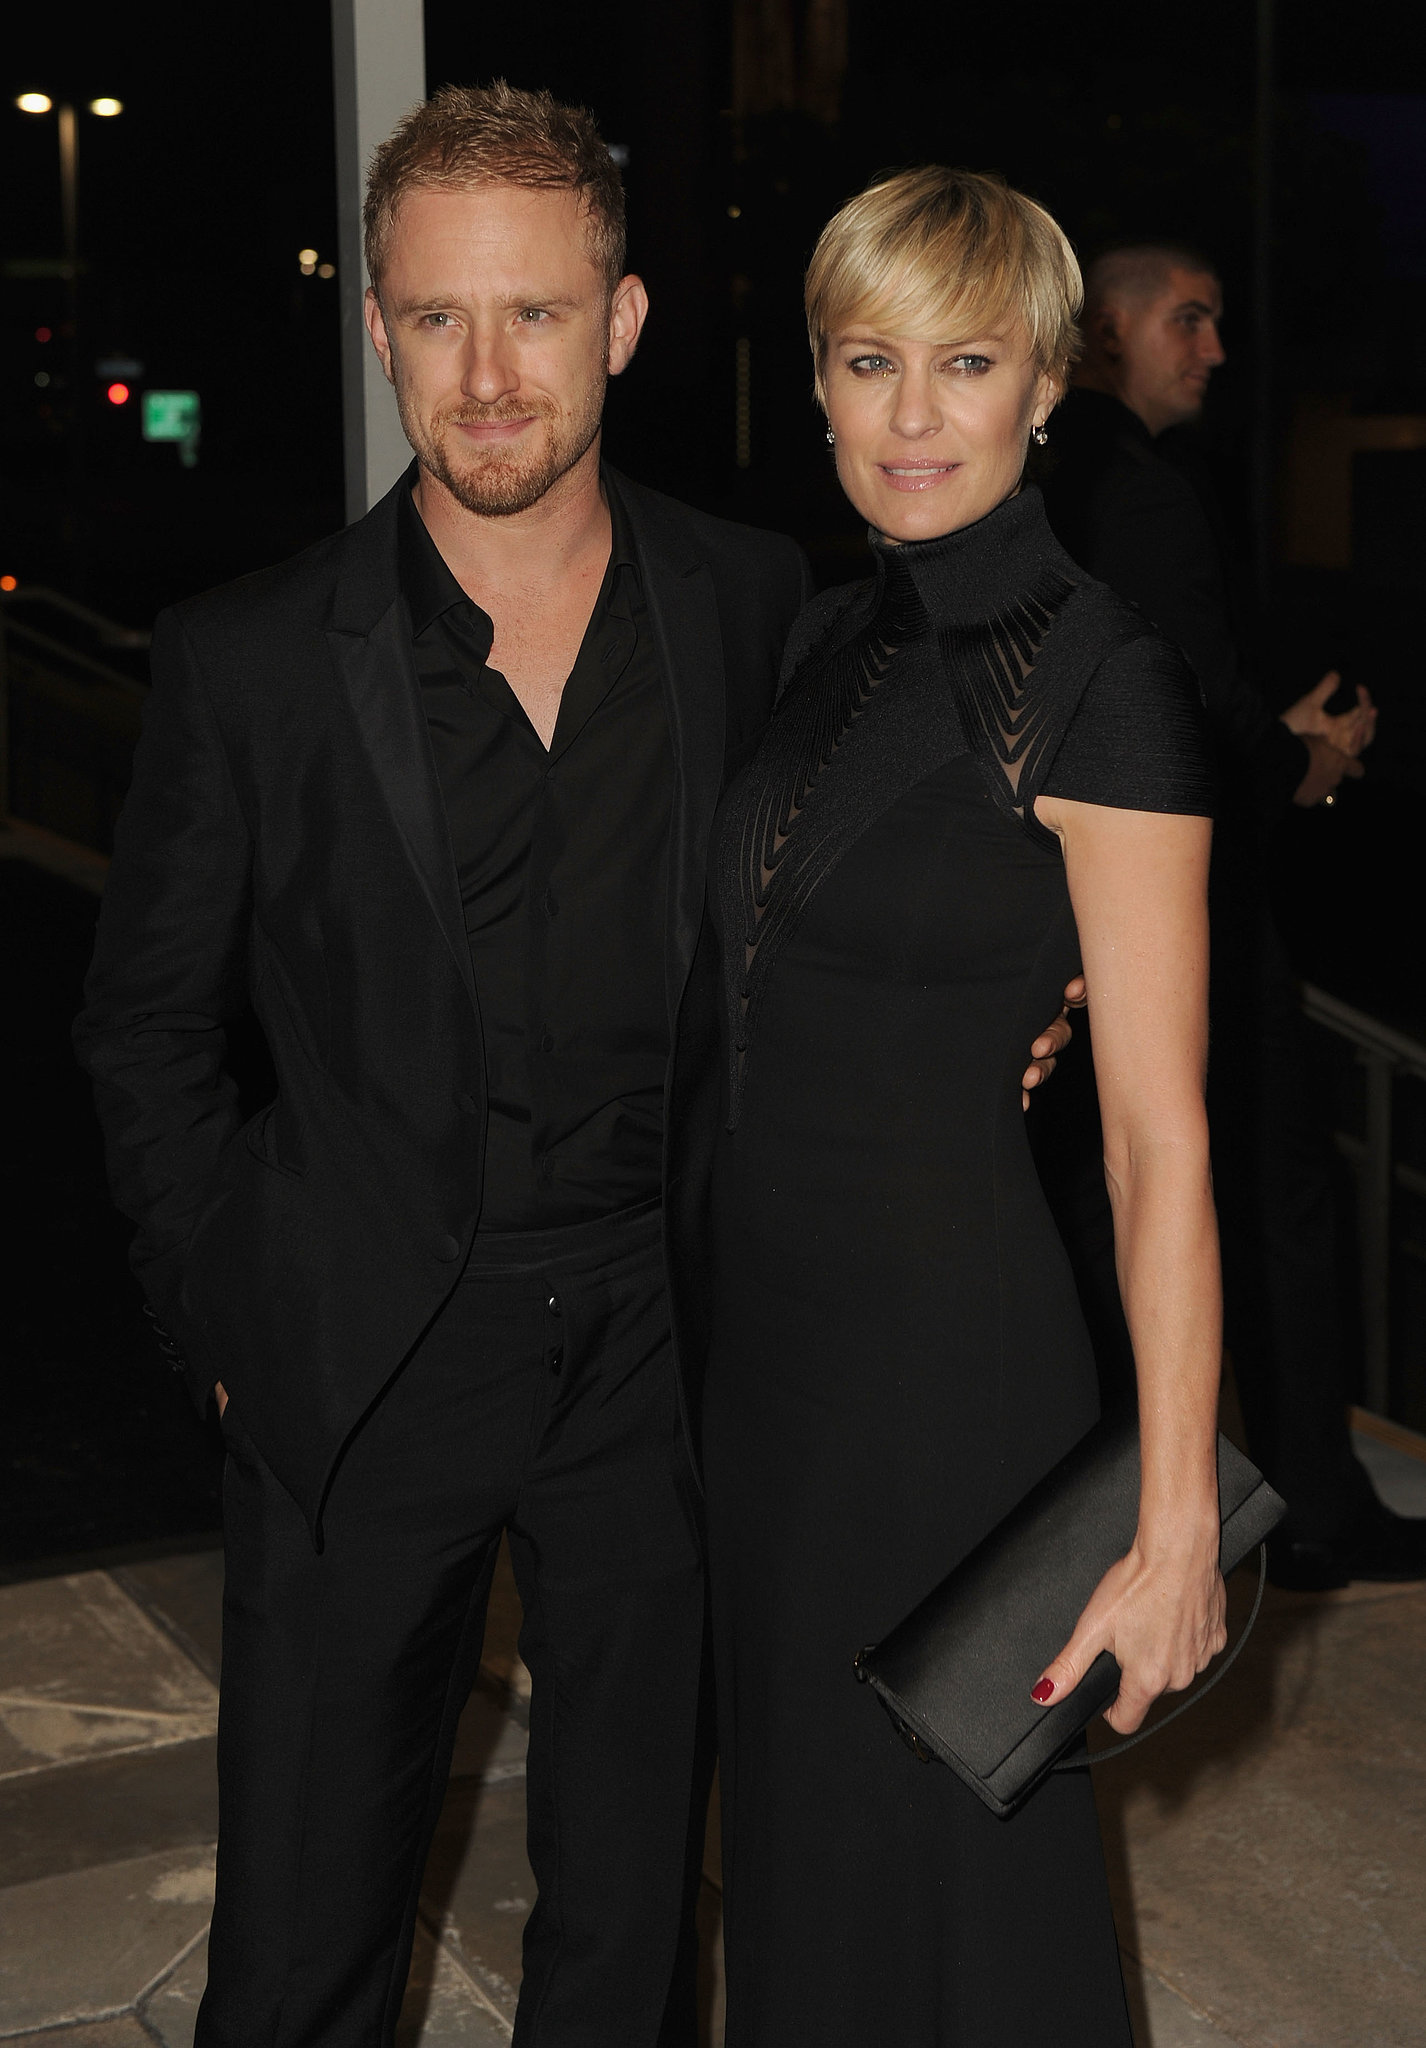 """On her relationship with 33-year-old actor Ben Foster: """"Ben and I have a connection between us that just feels right. I don't know any other word for it. It's surreal. [The proposal was] such a shock. But we felt married anyway. We've been together ever since the first date."""" On their first date at a poetry recital: """"I'd never, ever been asked out on a date before. Never. I was frickin' married my whole life, and even before that I hadn't been asked out."""" On the couple's matching tattoos (Robin has a small letter """"B"""" on the third finger of her left hand: """"Ben has an 'R' tattoo in the same place. I've been so antitattoos my whole life. But doing this felt right because we're not that traditional."""""""